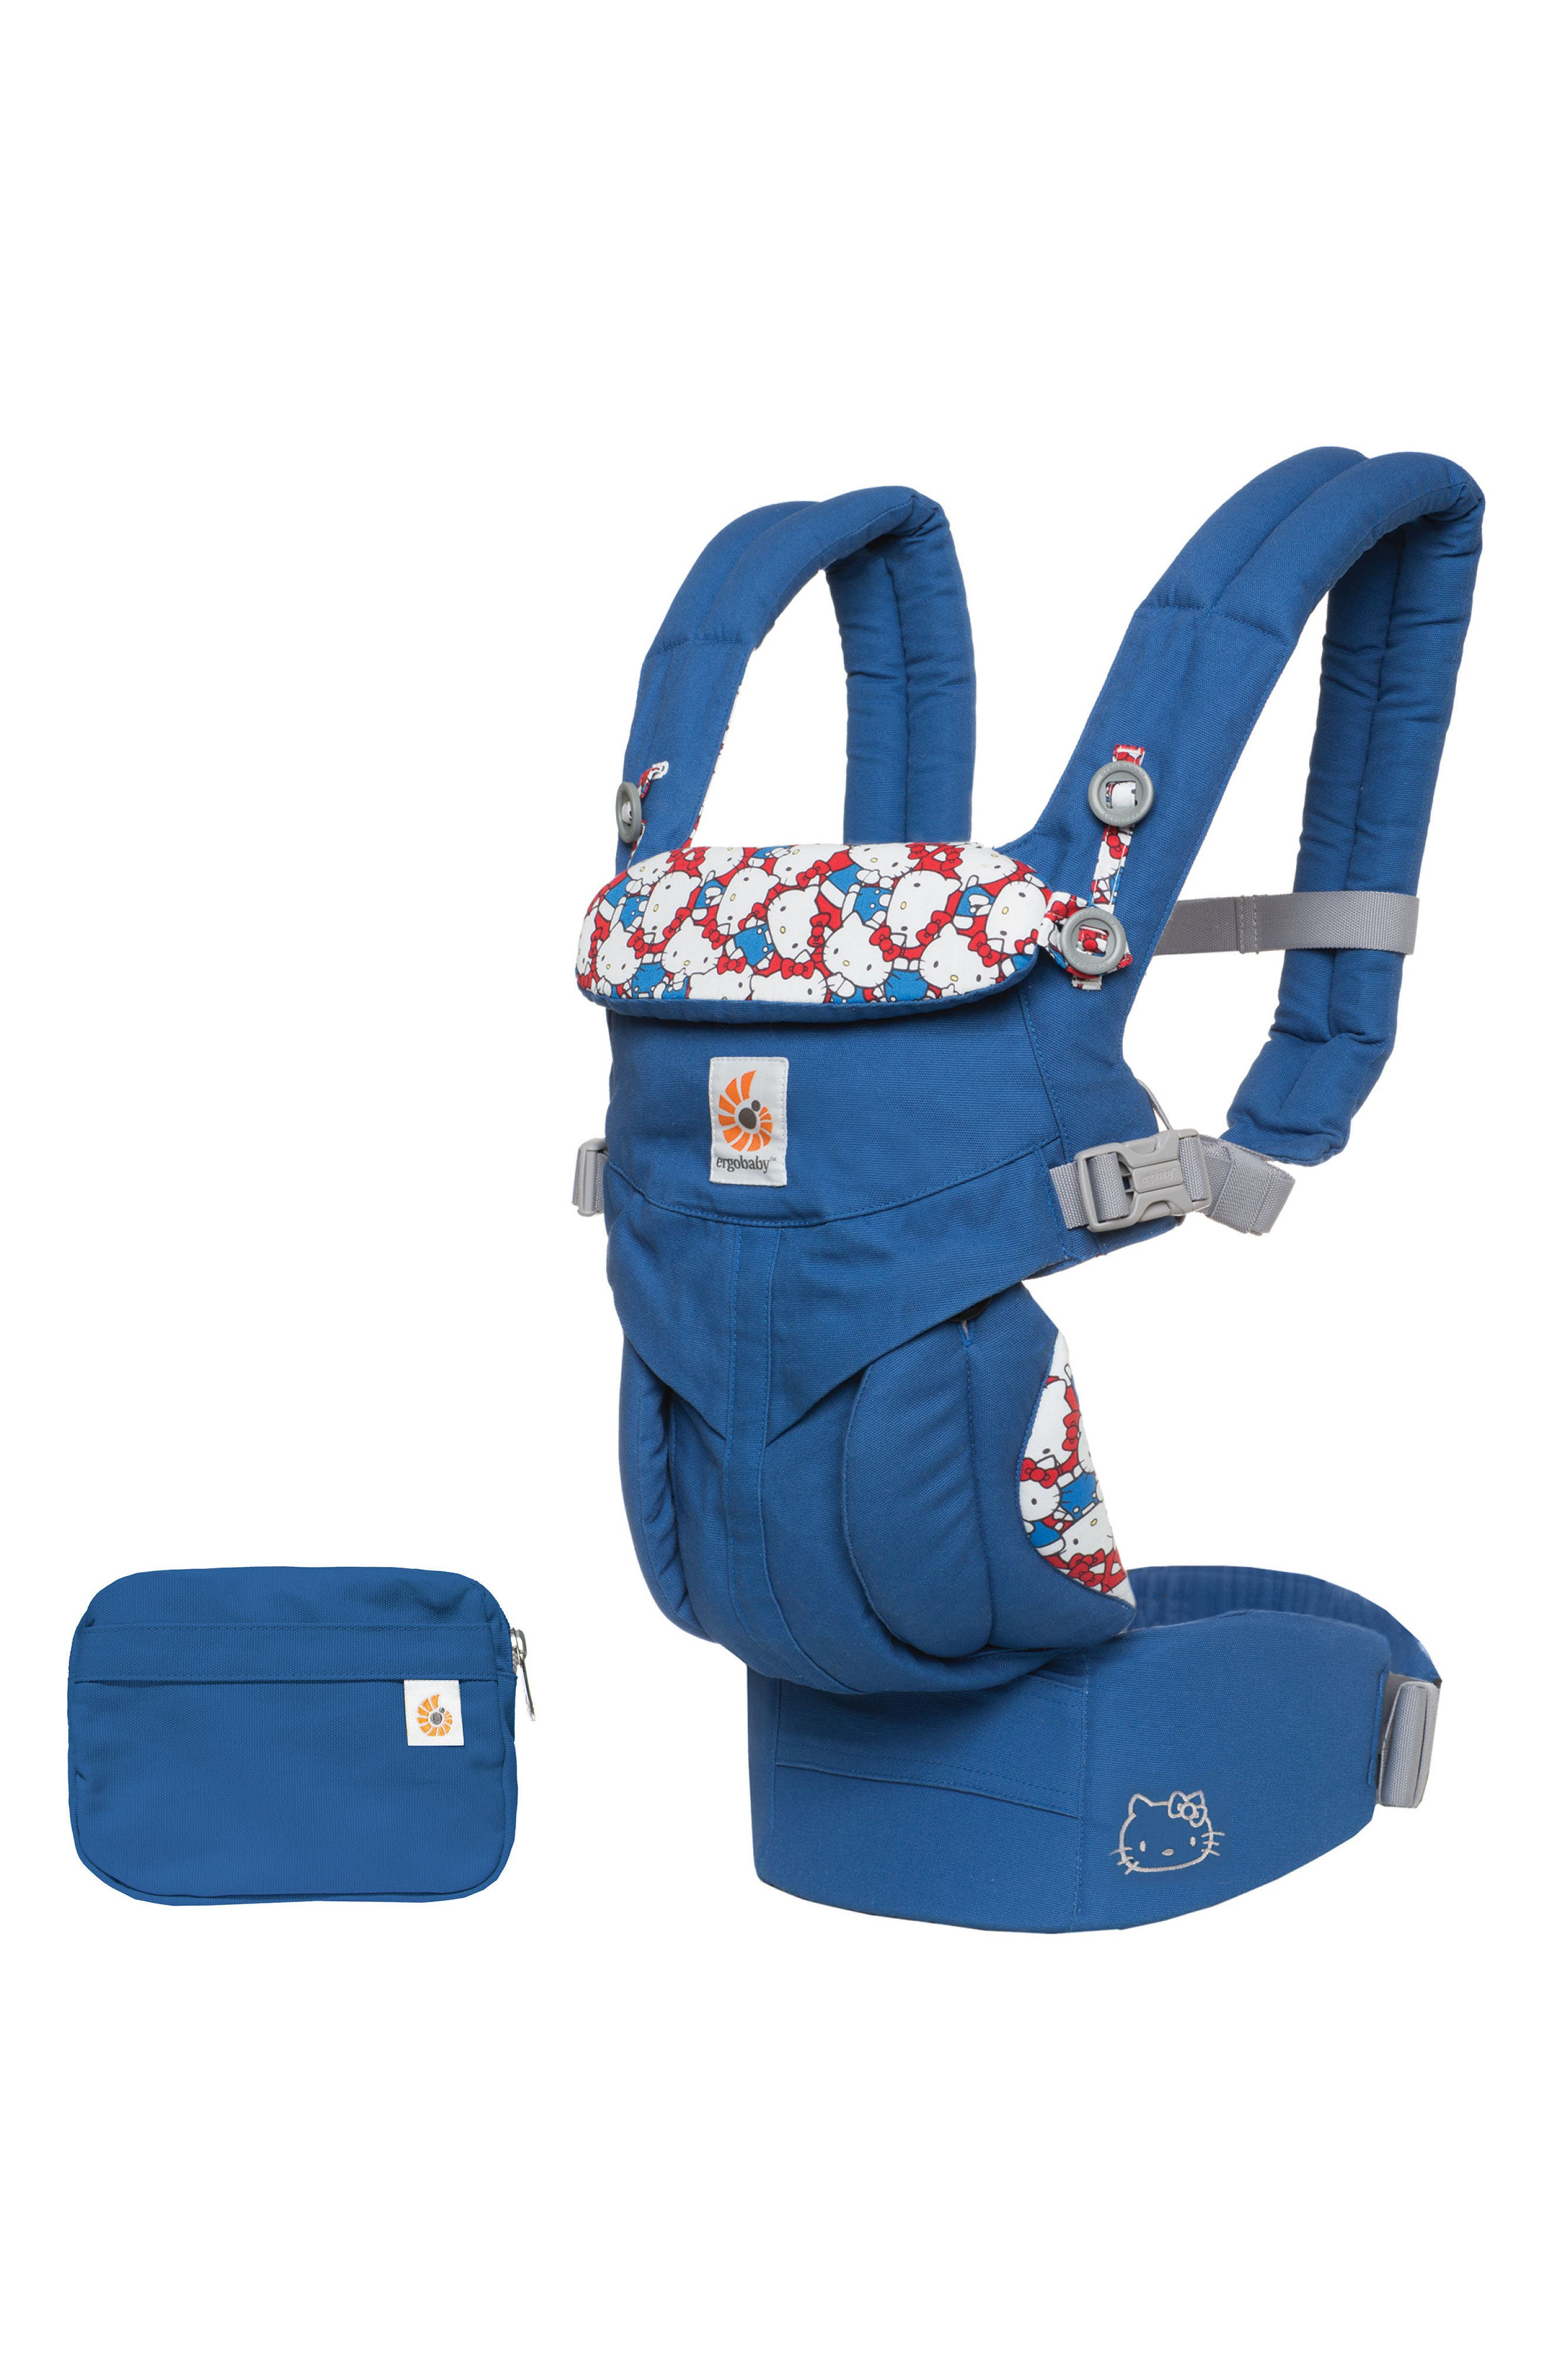 x Hello Kitty<sup>®</sup> Omni 360 Baby Carrier,                         Main,                         color, 420